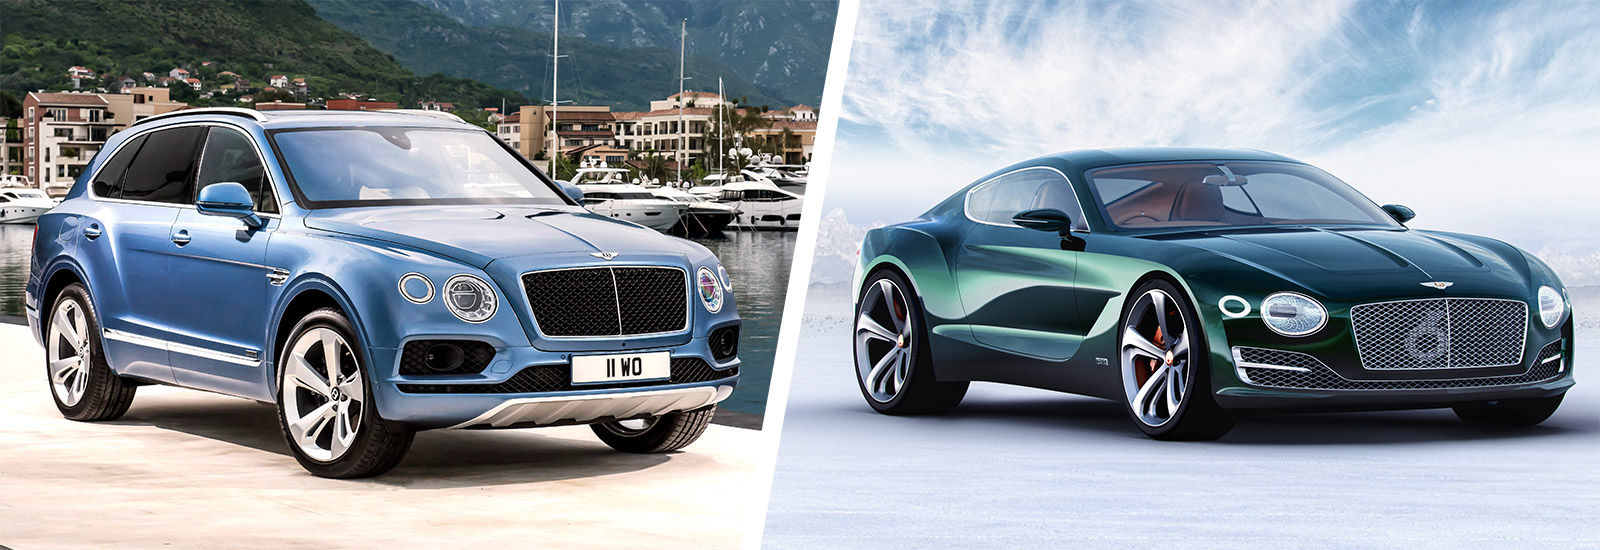 top of speed luxurious interior gt continental cargurus bentley exterior a price car coupe watch